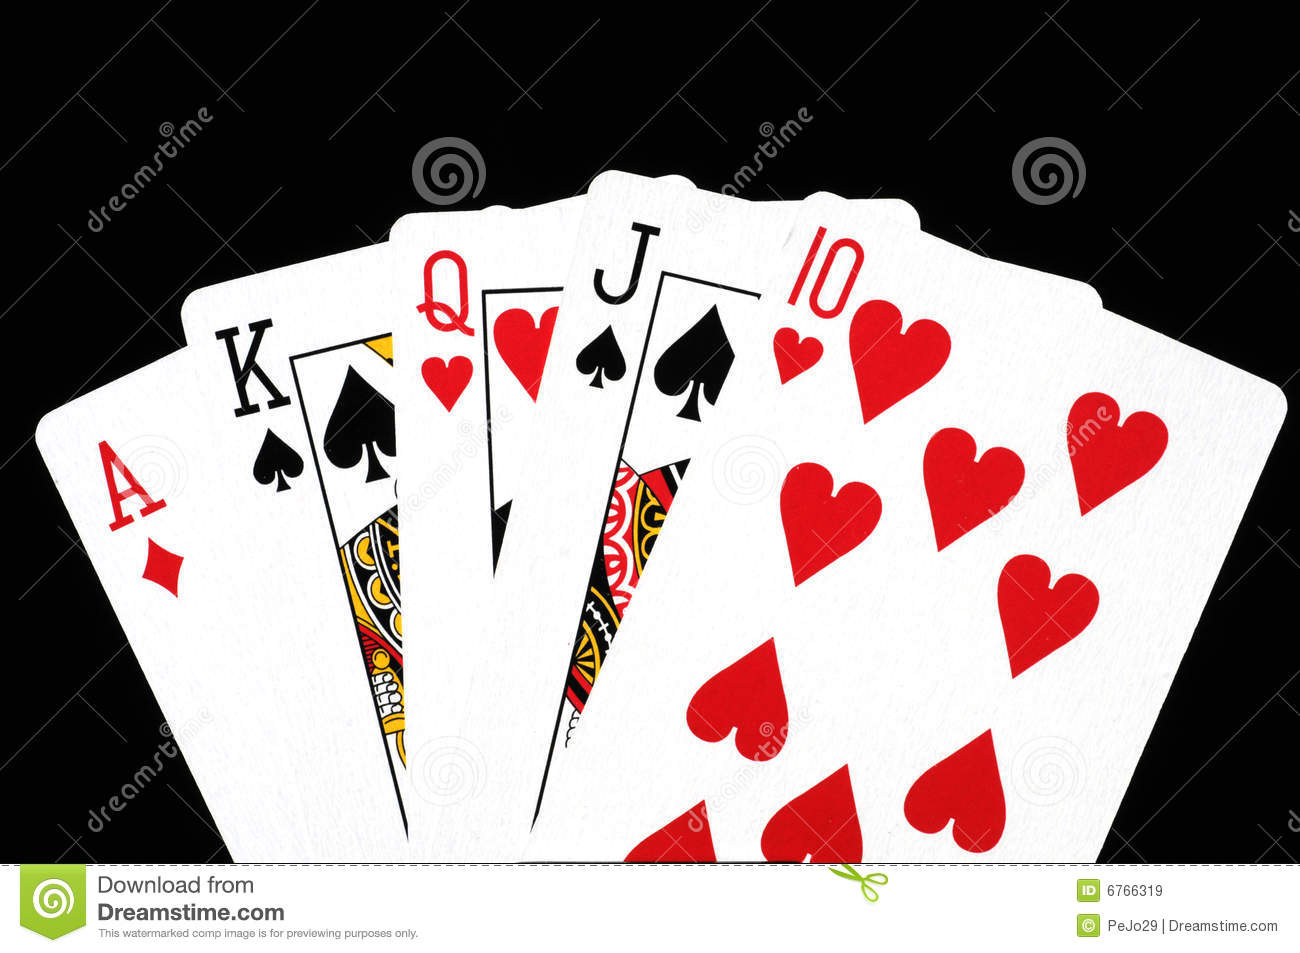 Poker Cards Royalty Free Stock Images - Image: 6766319